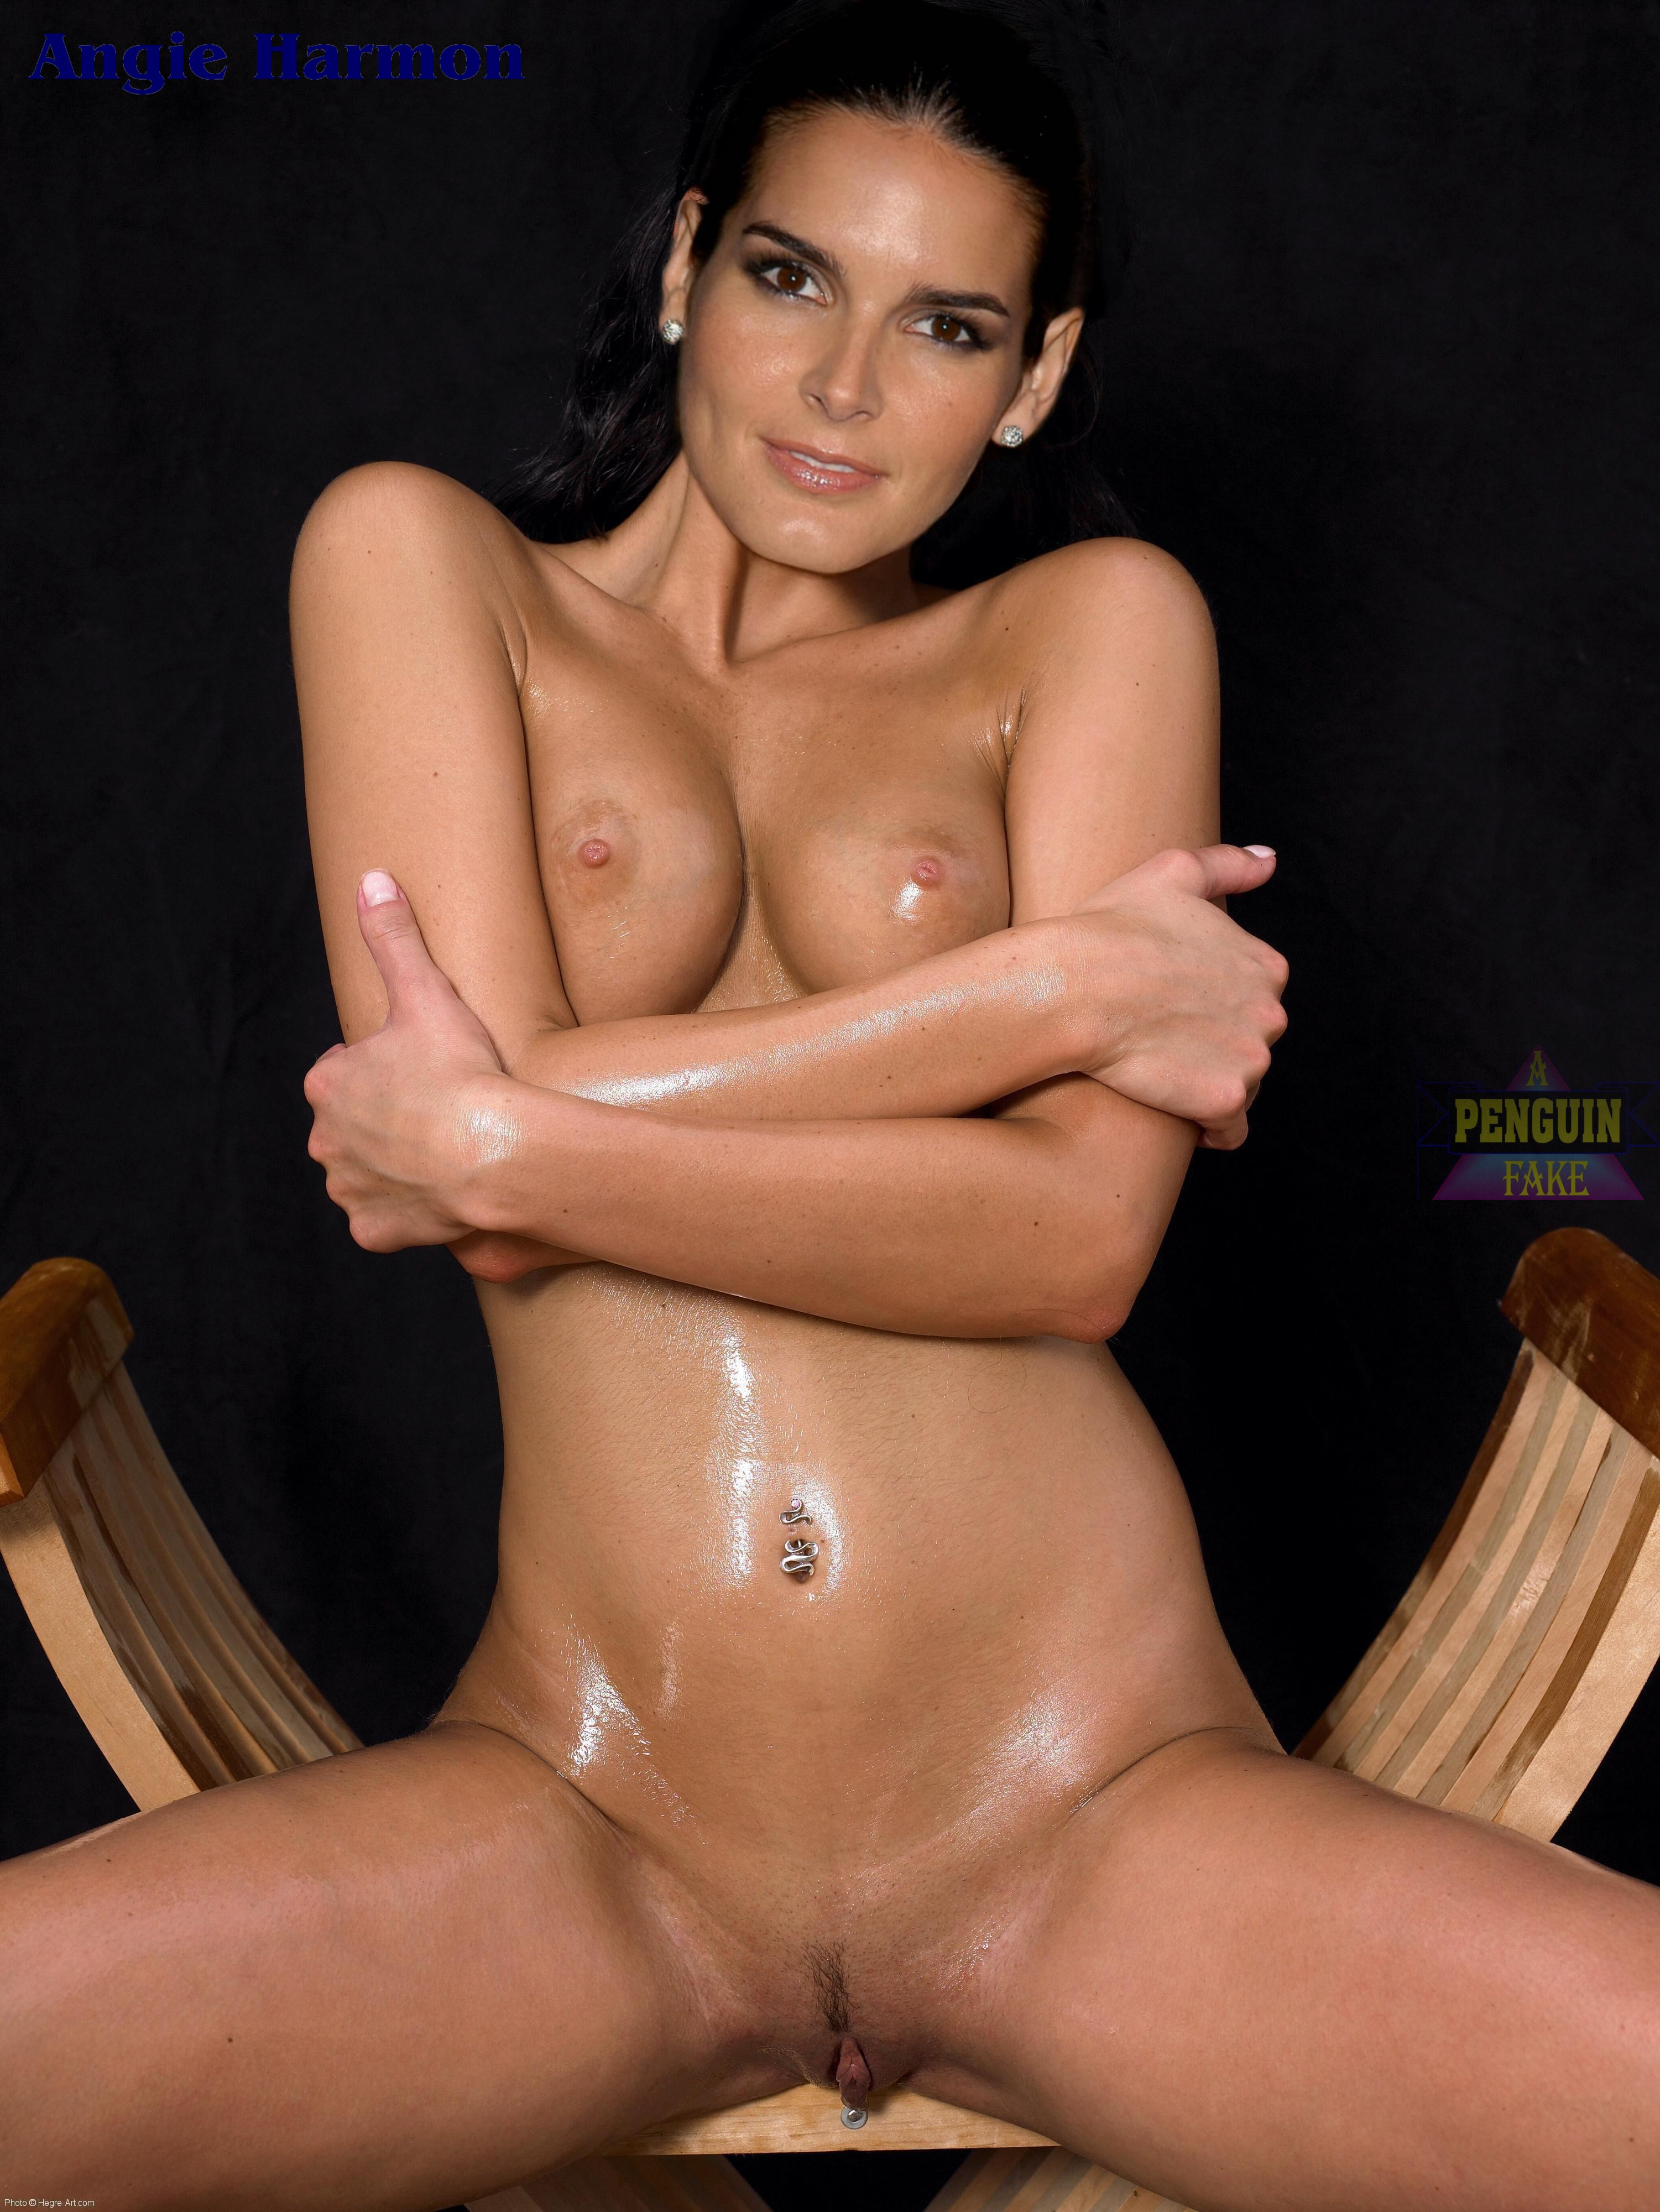 Angie Harmon Nuda showing porn images for angie harmon lesbian porn | www